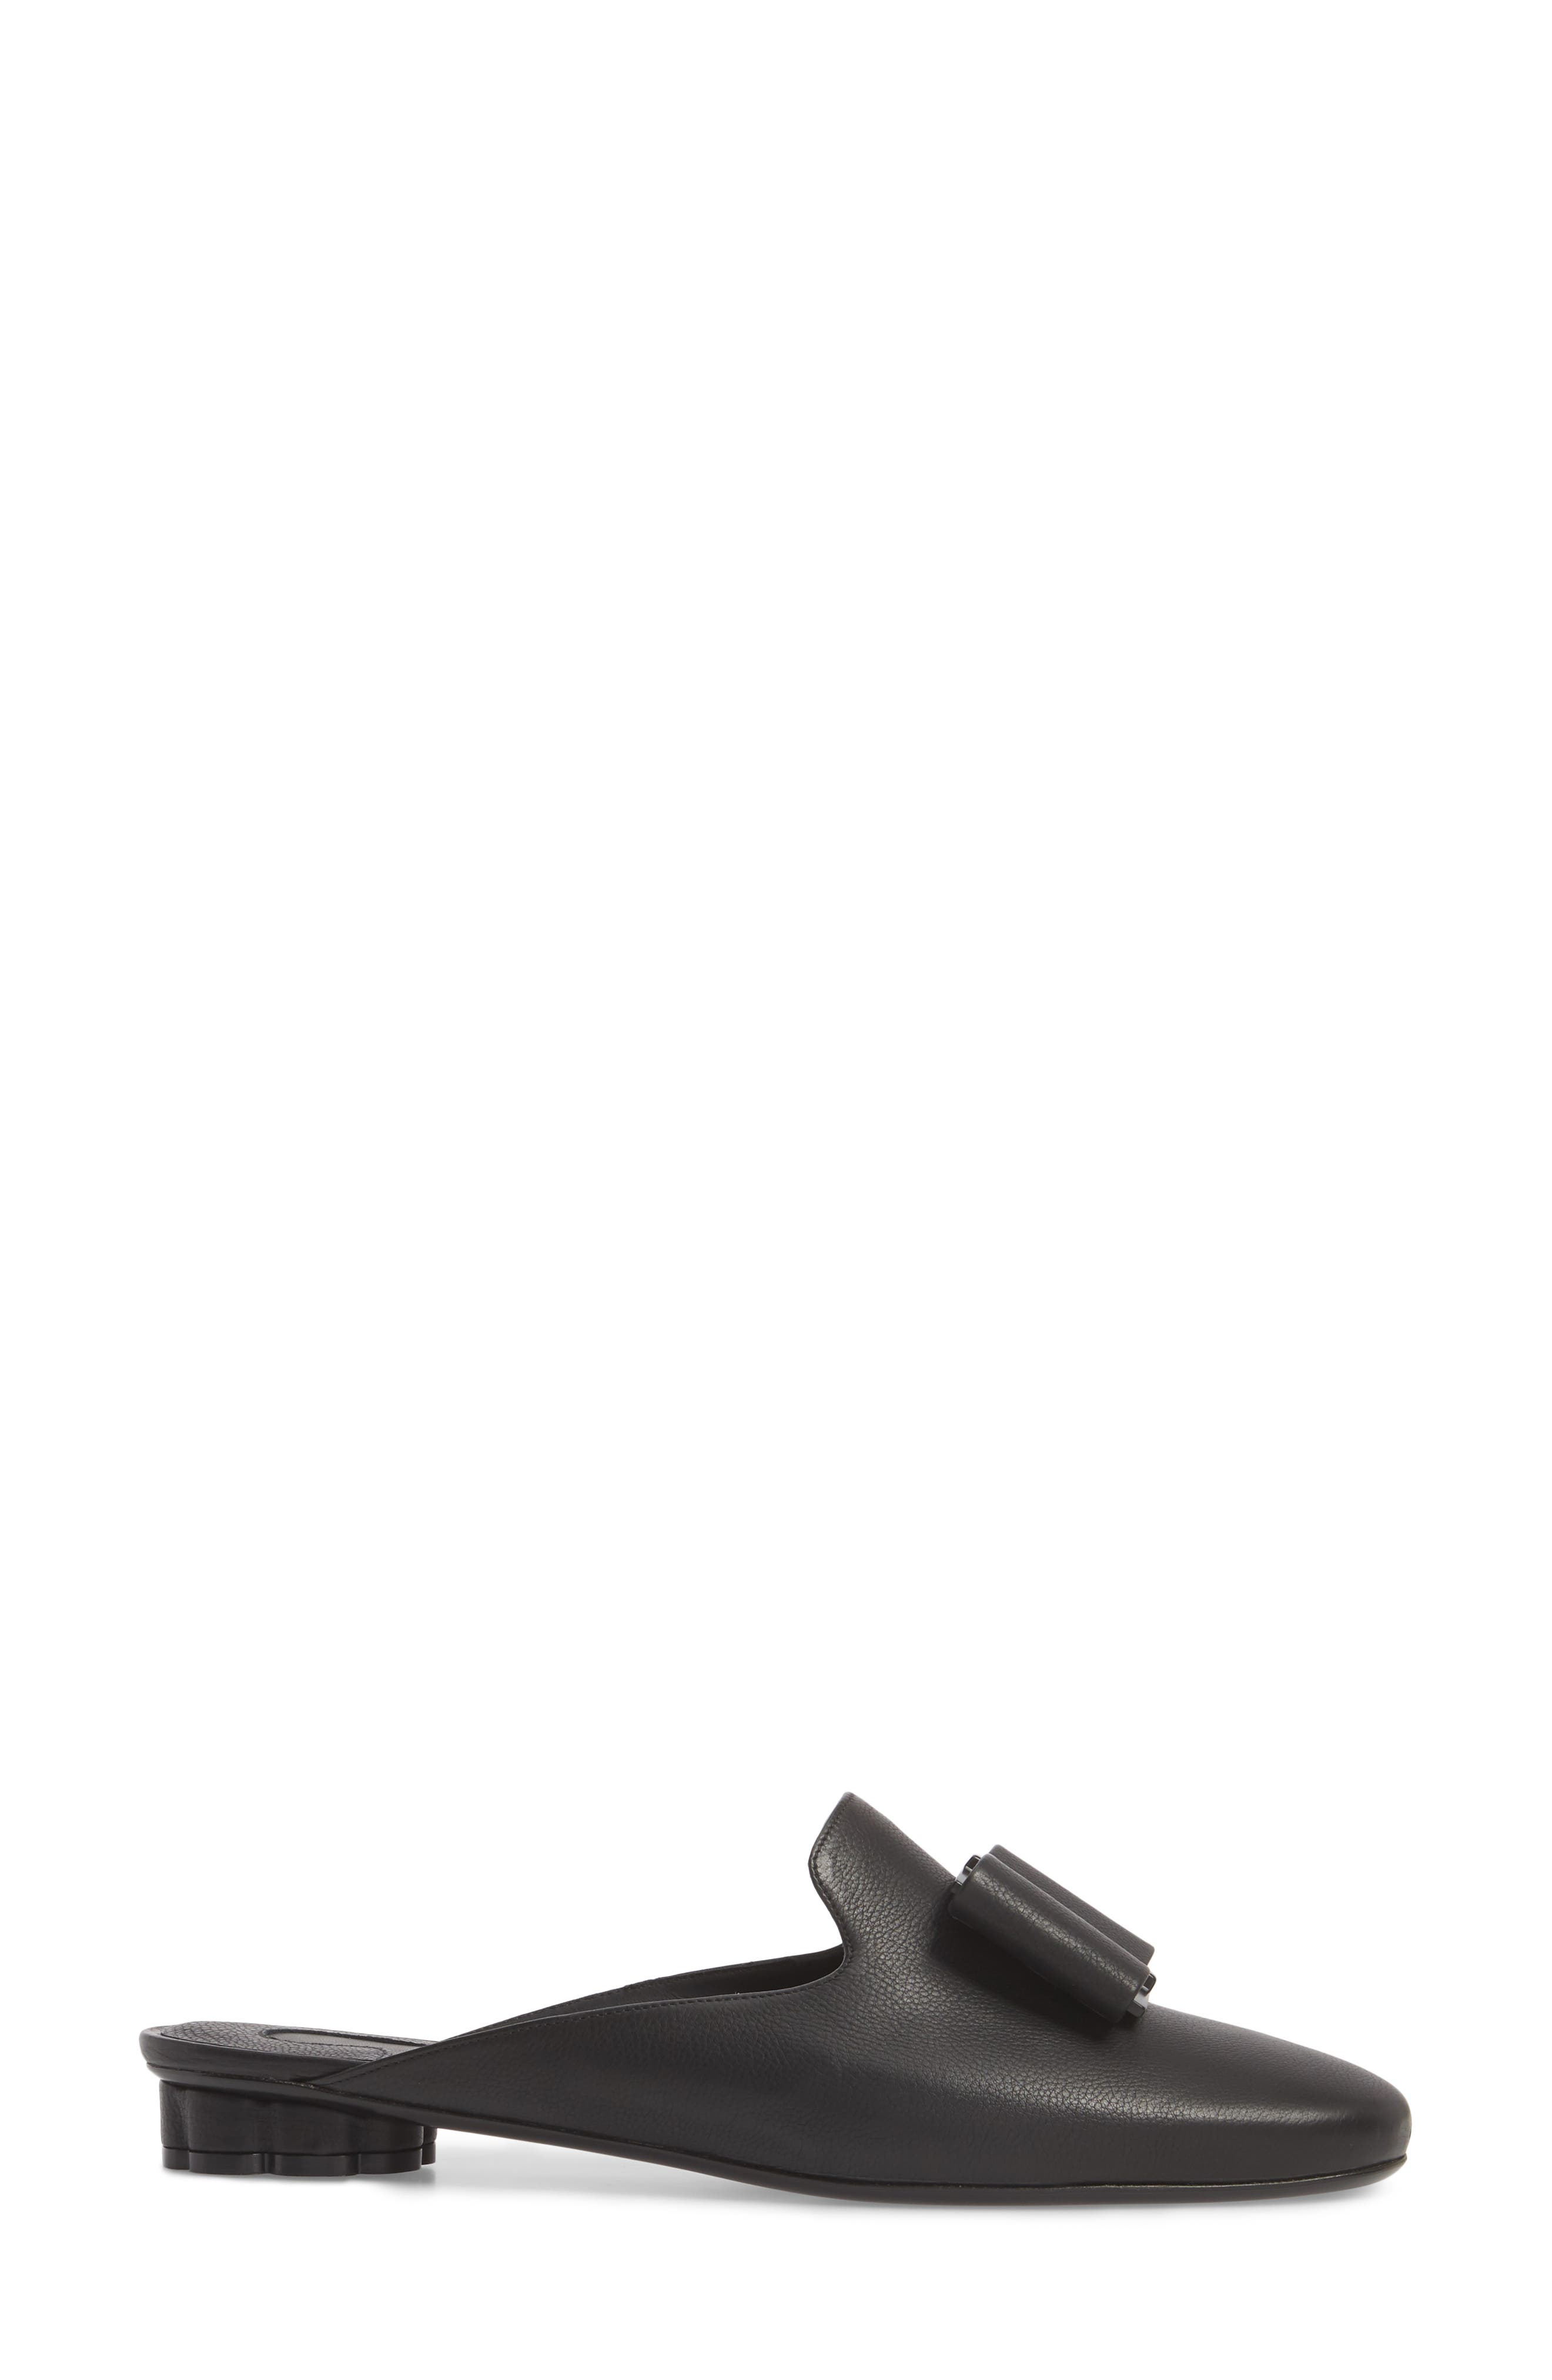 Sciacca Bow Loafer Mule,                             Alternate thumbnail 3, color,                             BLACK